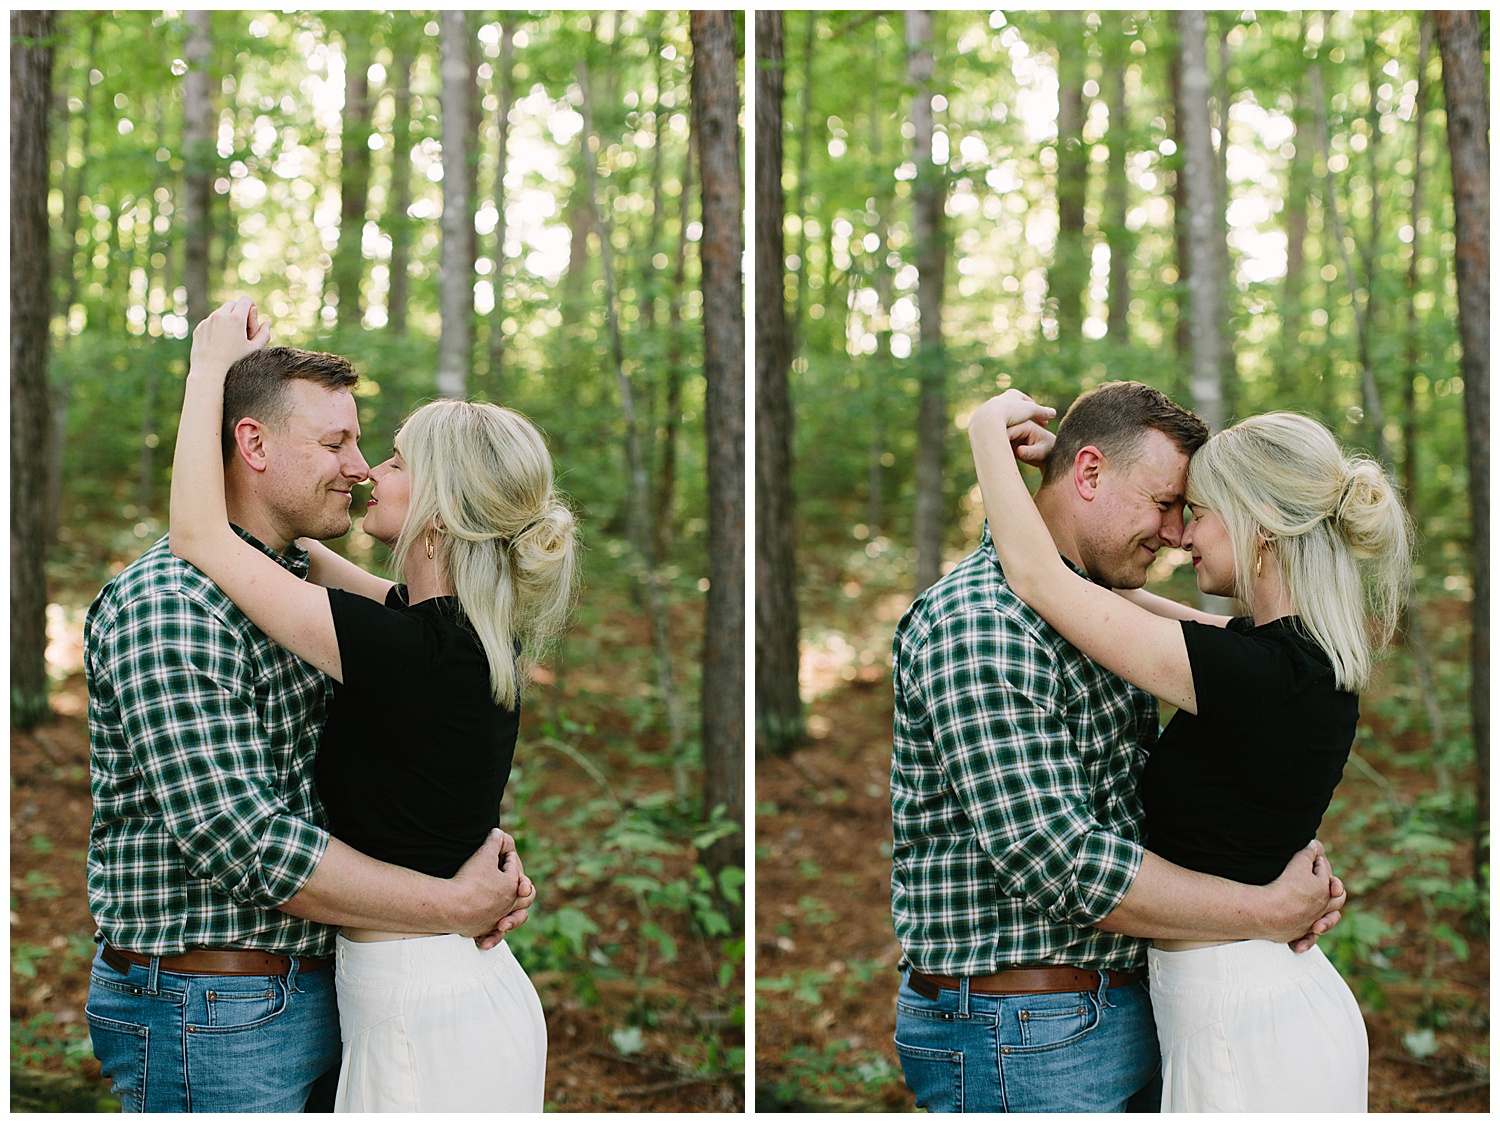 trent.and.kendra.photography.bernheim.forest.photos-11.jpg